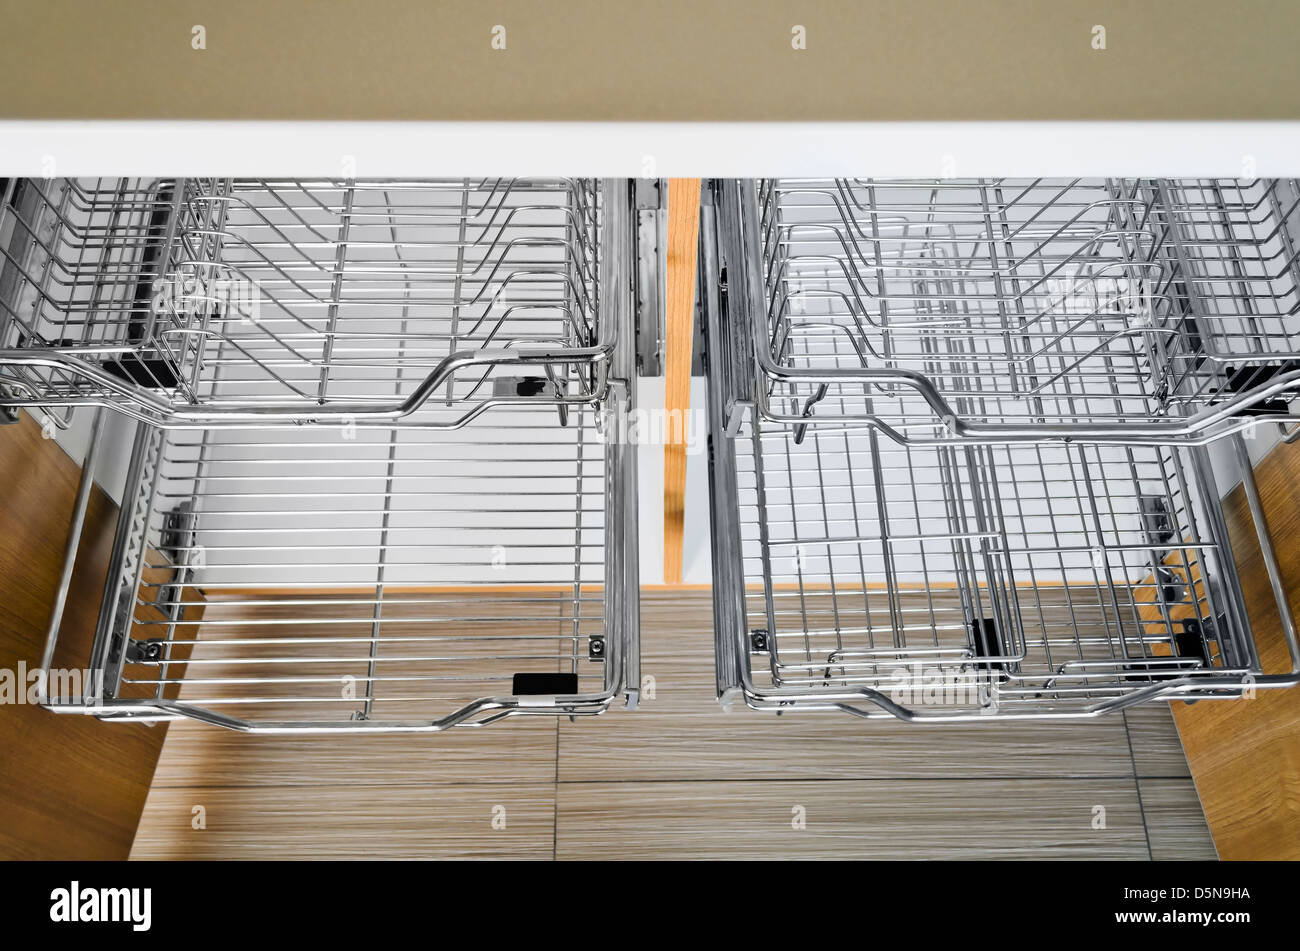 https www alamy com stock photo open kitchen cabinet with two layers of stainless dish rack 55172918 html